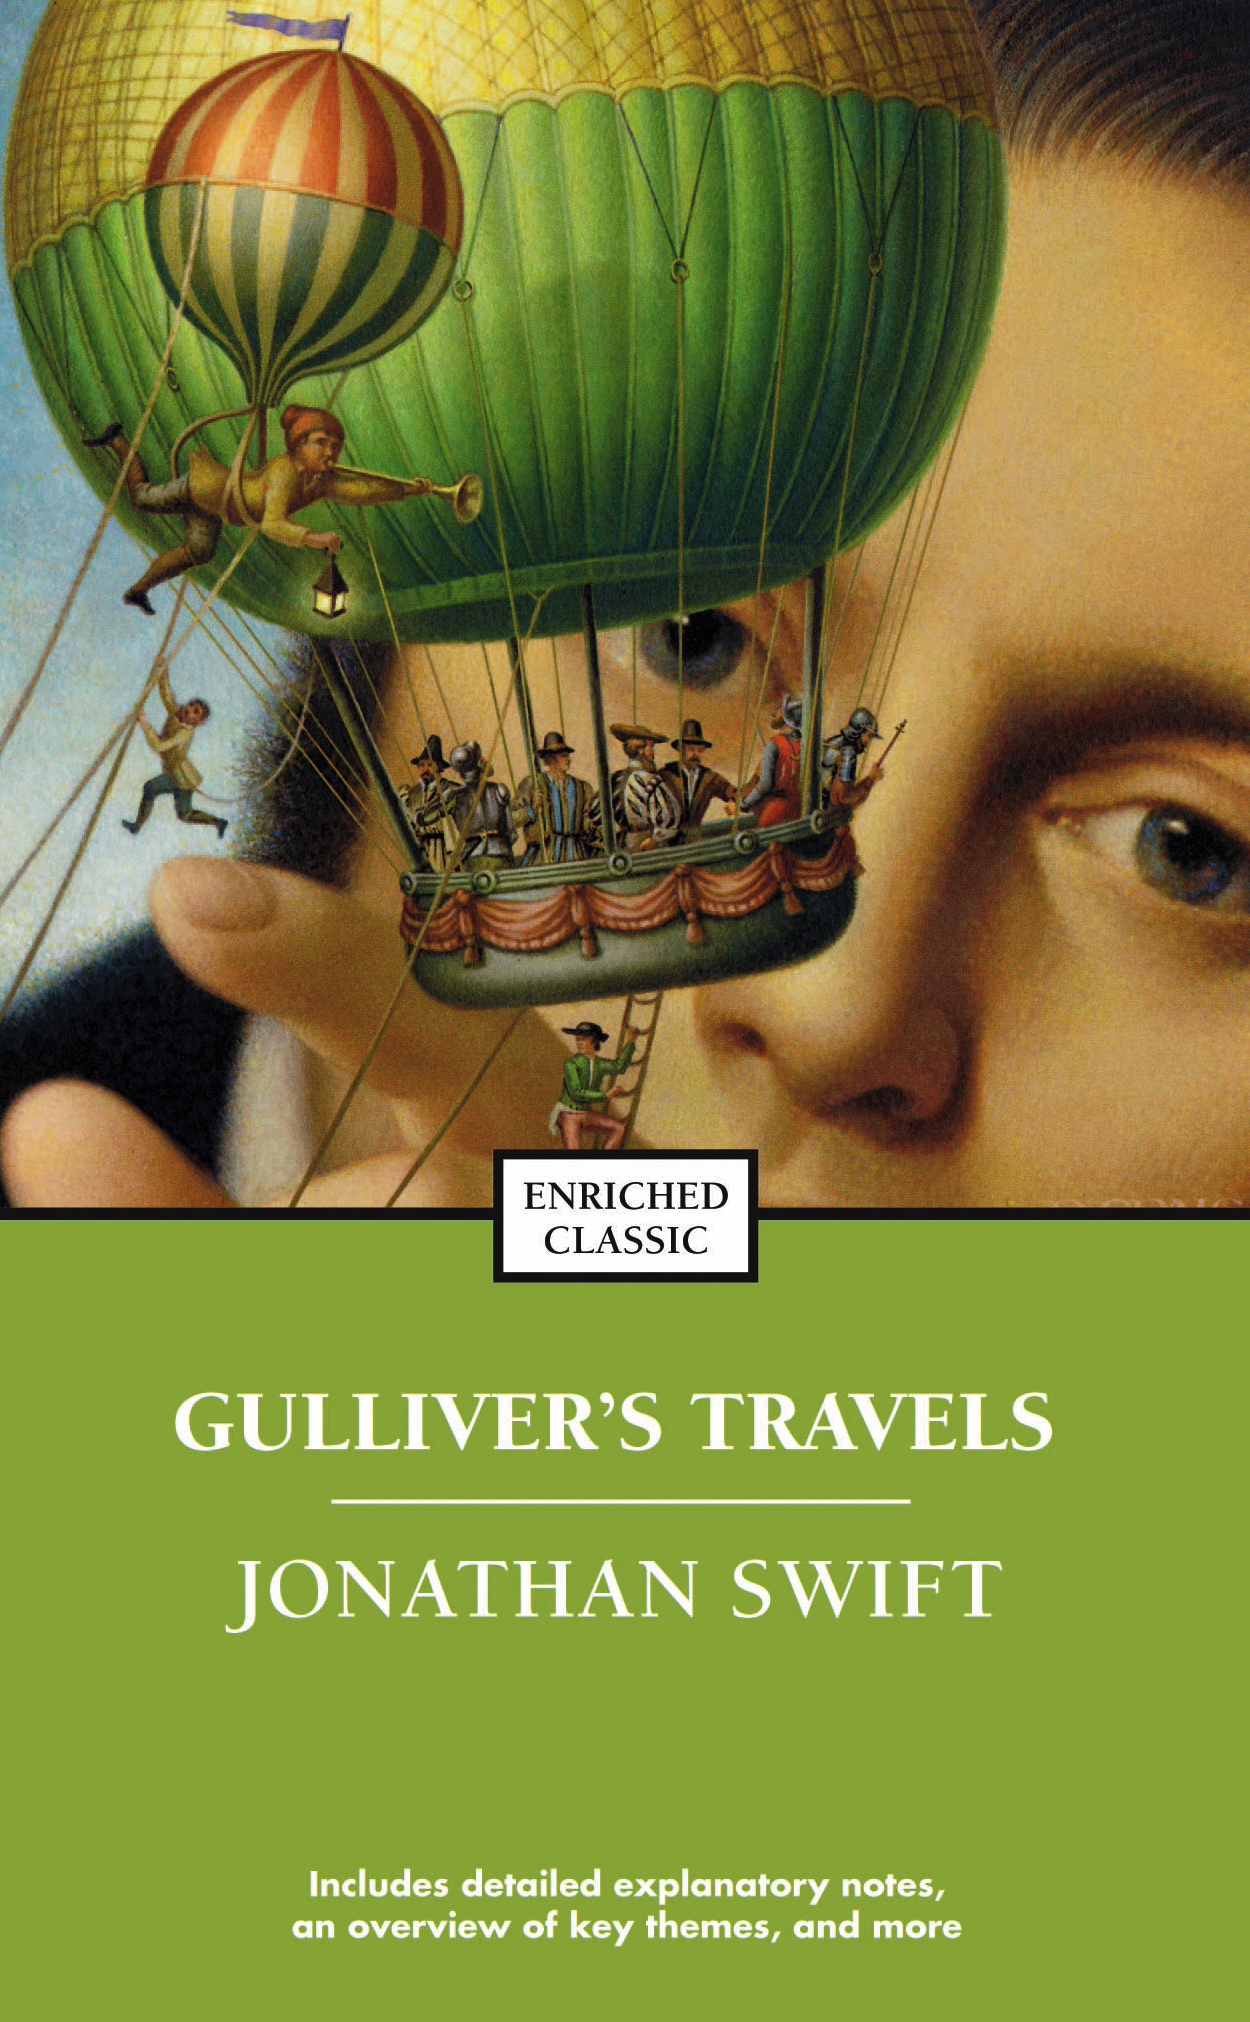 an analysis of the satire in gullivers travels by jonathan swift Friends, in this chapter, we will study the novel gulliver's travels by jonathan swift a study of this chapter will enable you to:- a) analyse the character of gulliver b) study the four parts of gulliver's travels c) analyse the structure of gulliver's travels d) analyse gulliver's travels as an example of irony and satire.